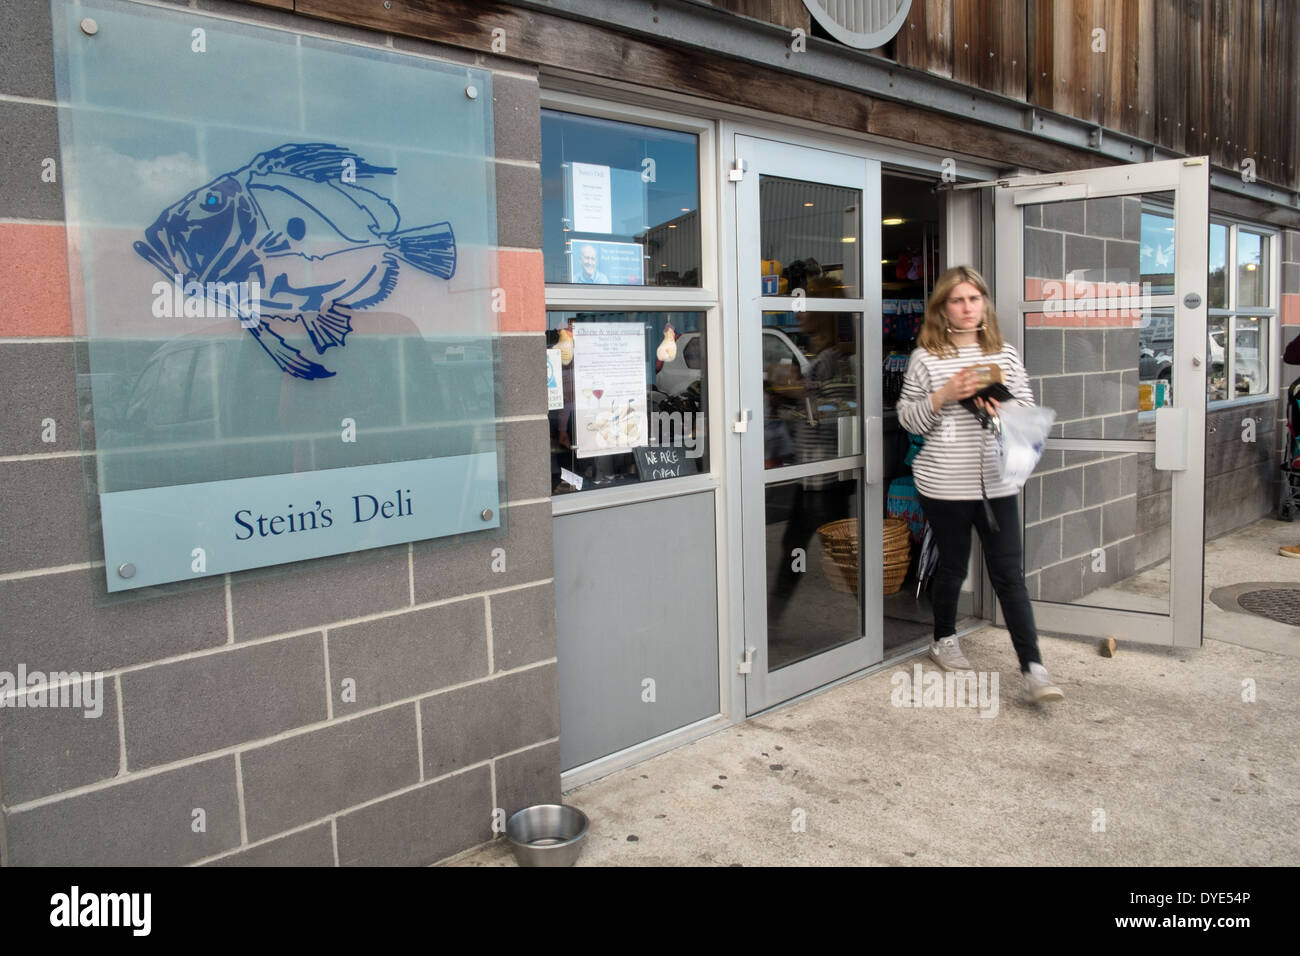 A customer leaving Cornish chef, Rick Stein's deli in Padstow, Cornwall, UK. The shop sign displays his group logo - Stock Image